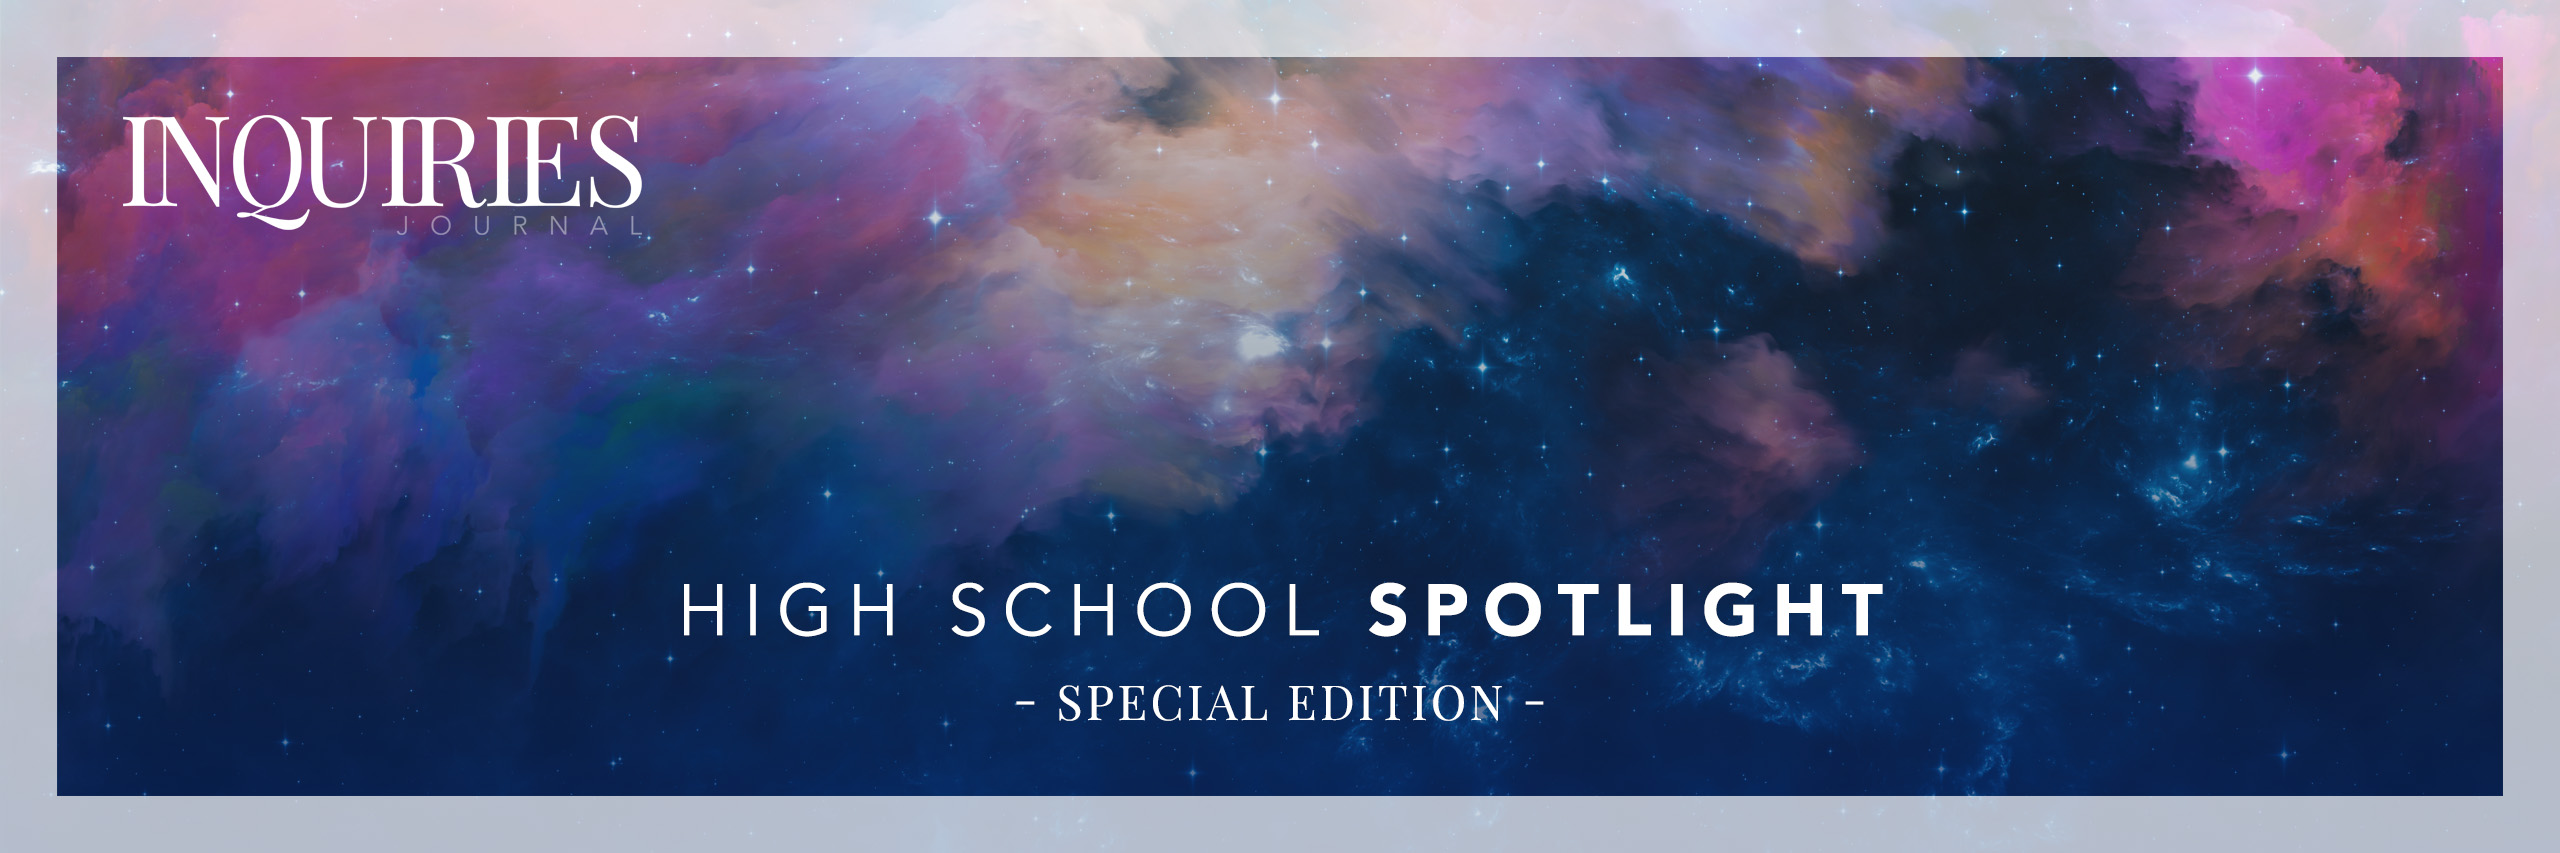 High School Spotlight